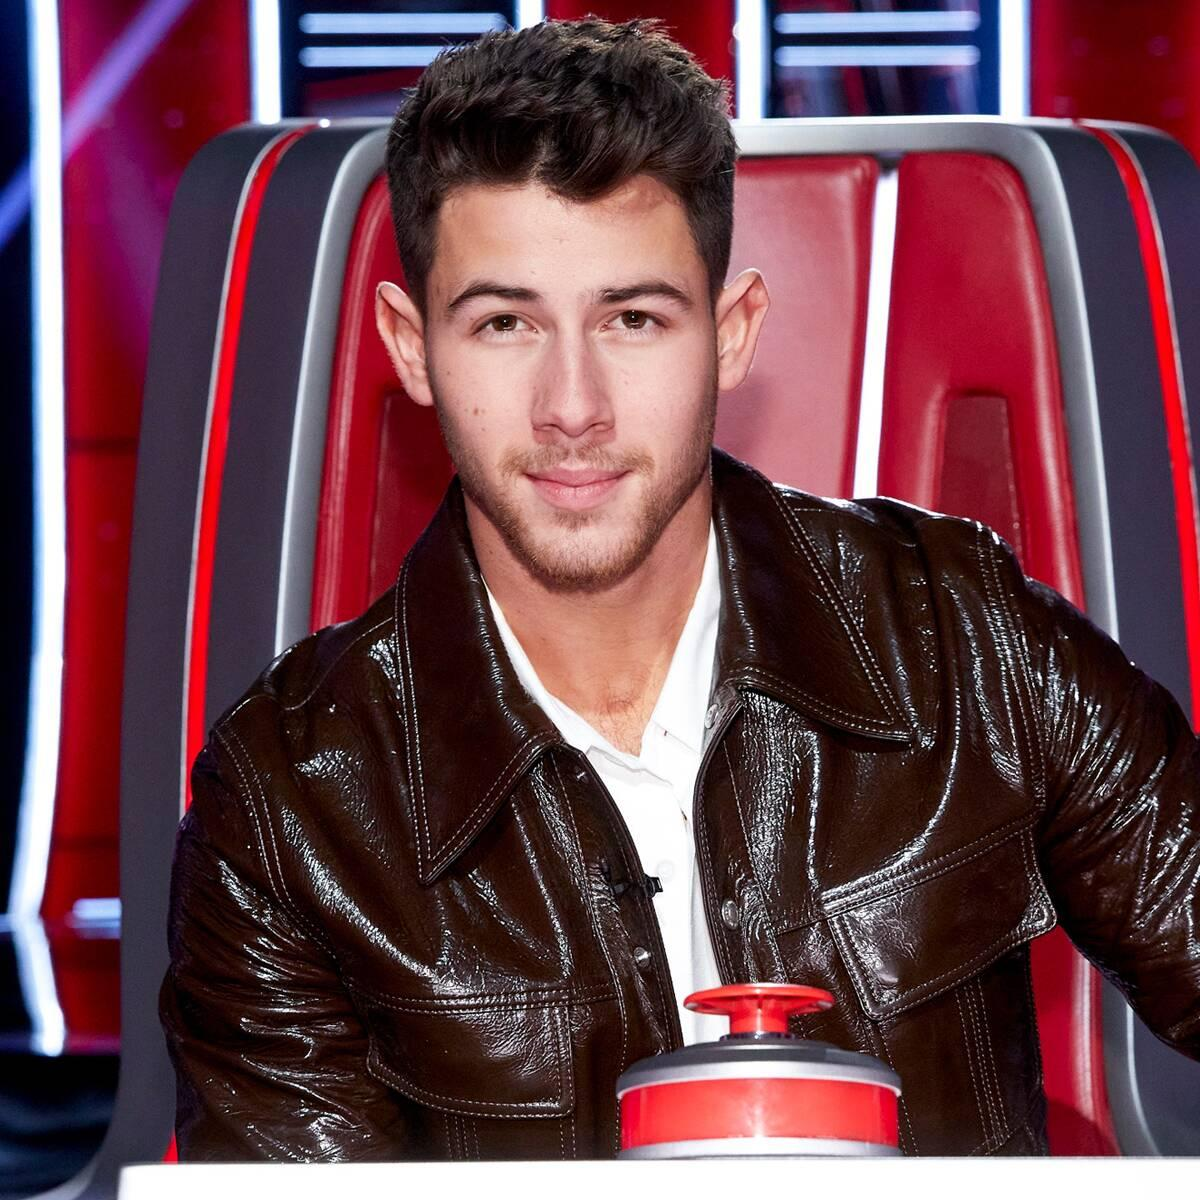 Nick Jonas Breaks His Silence After Suffering Injuries in Bike Accident – Yahoo Entertainment